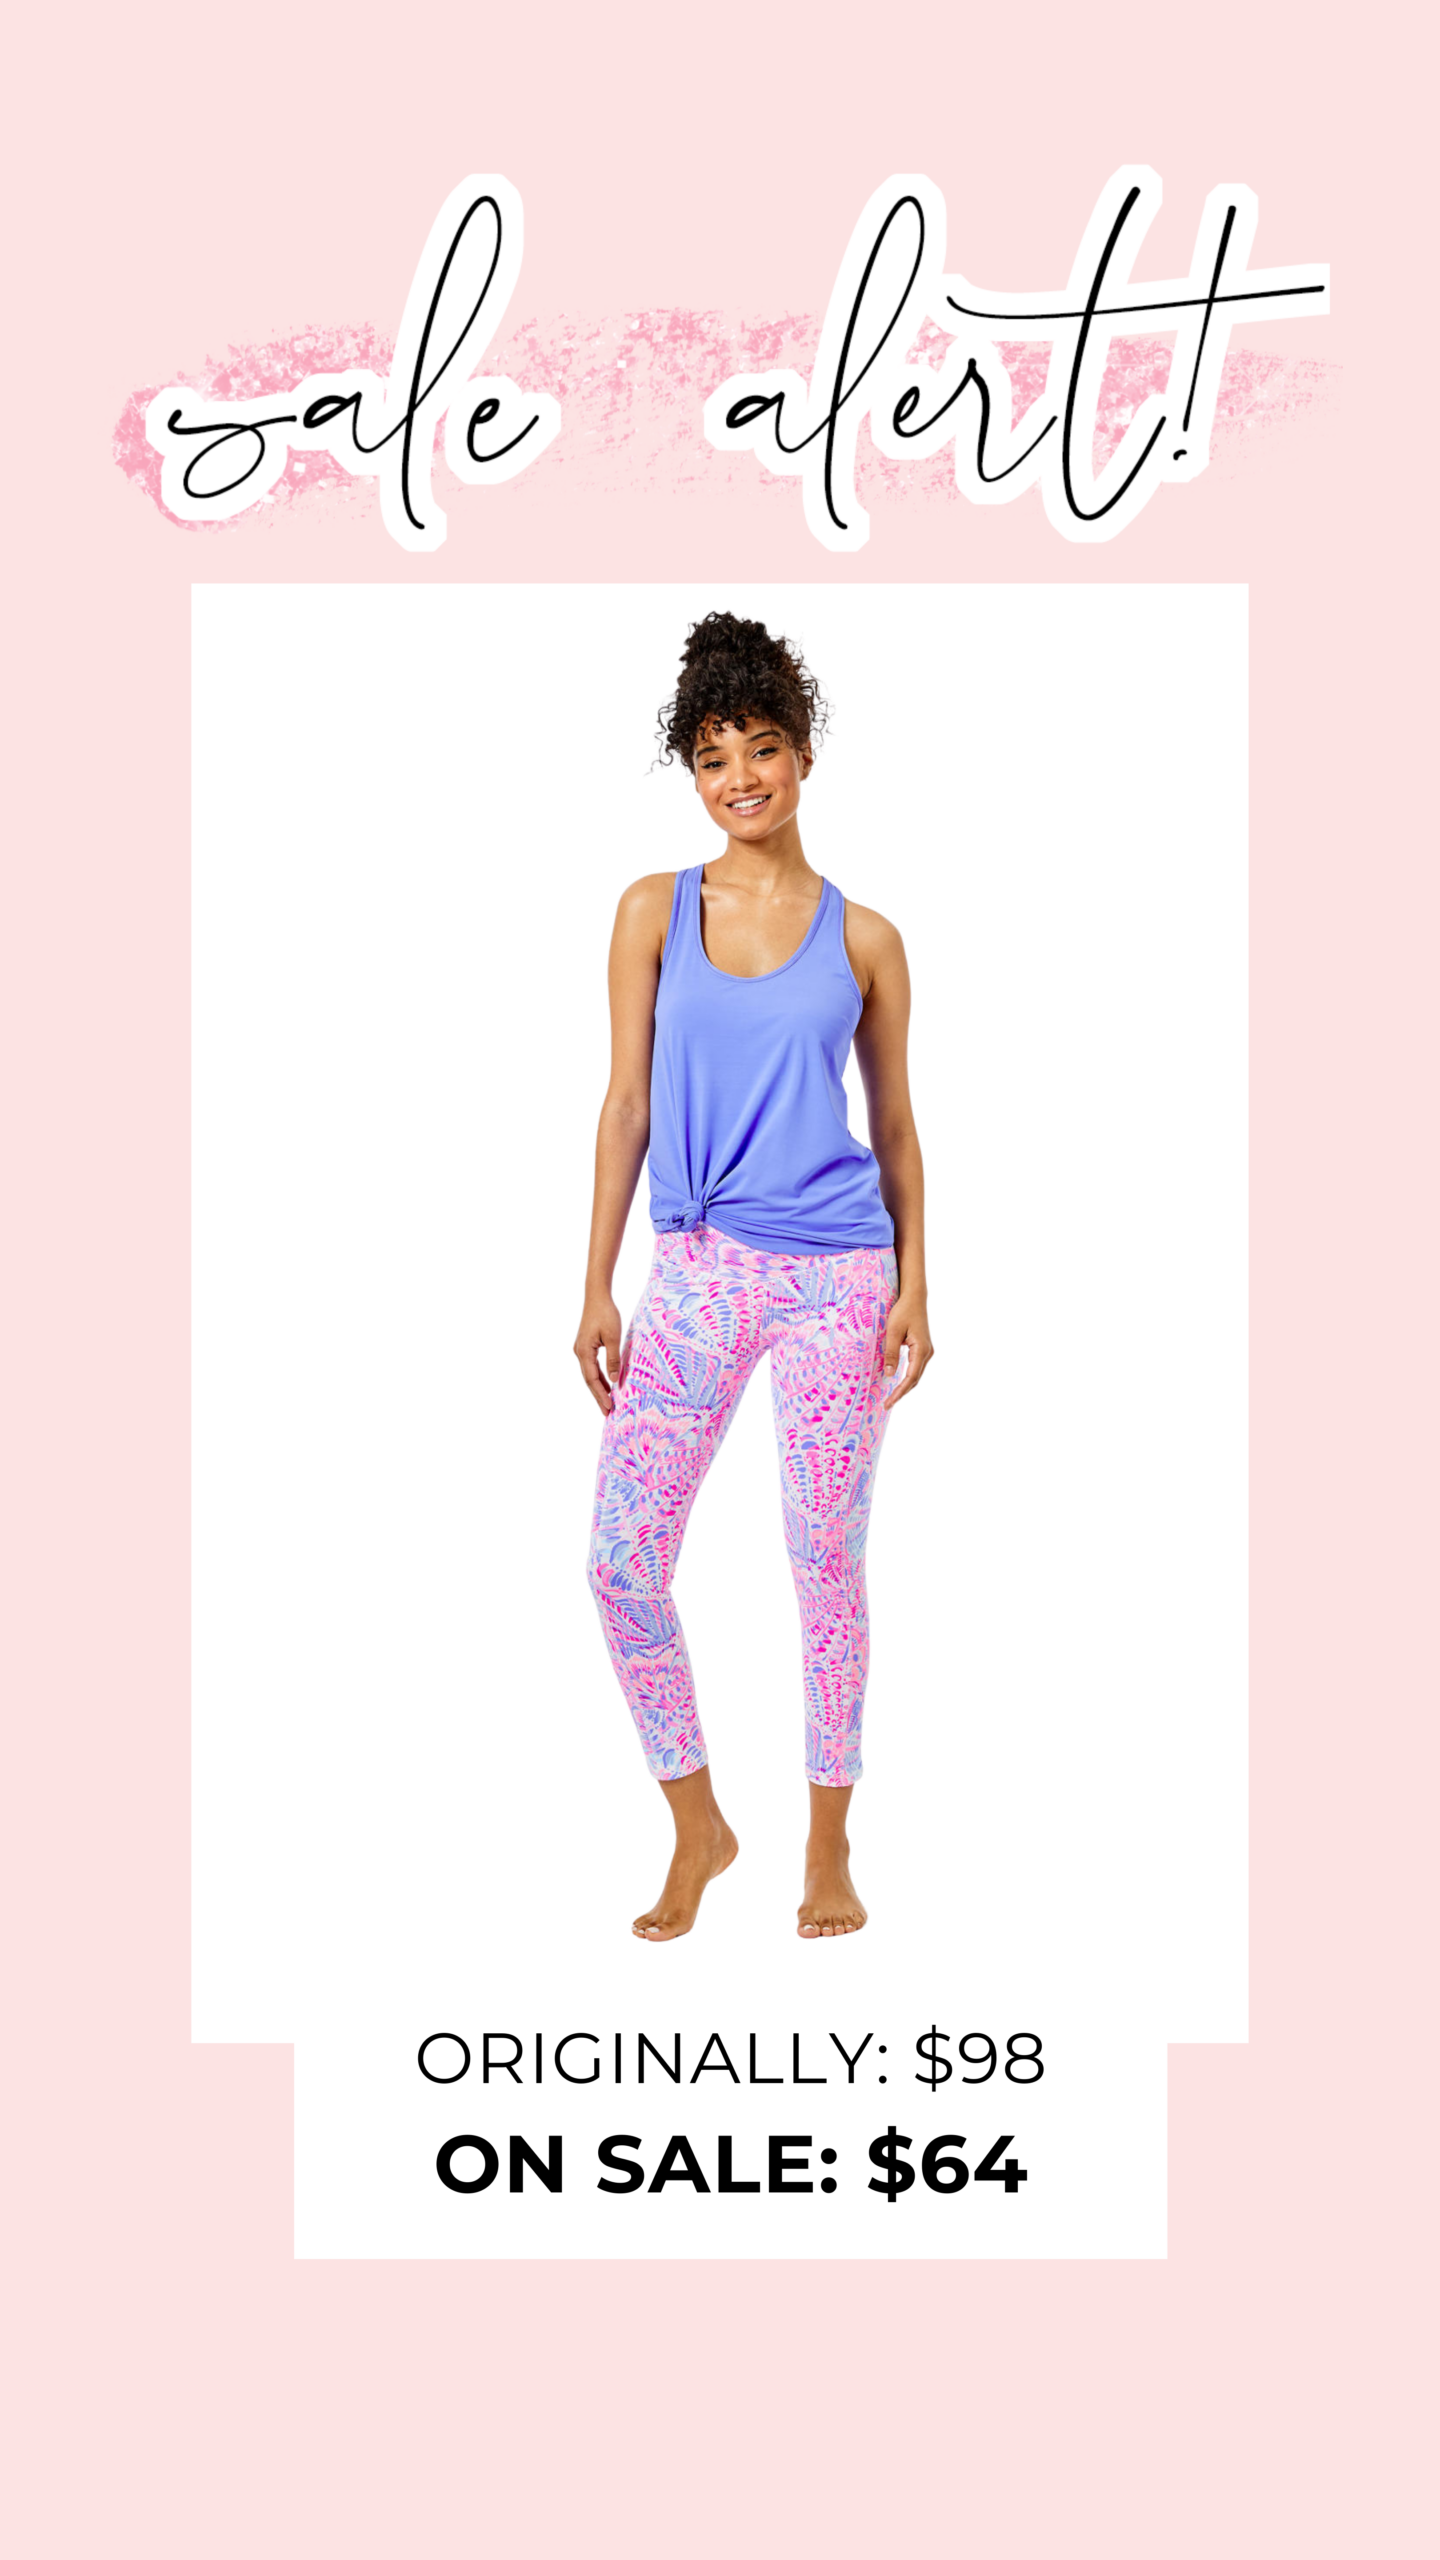 Lilly Pulitzer After Party Sale Sunshine Sale 2021